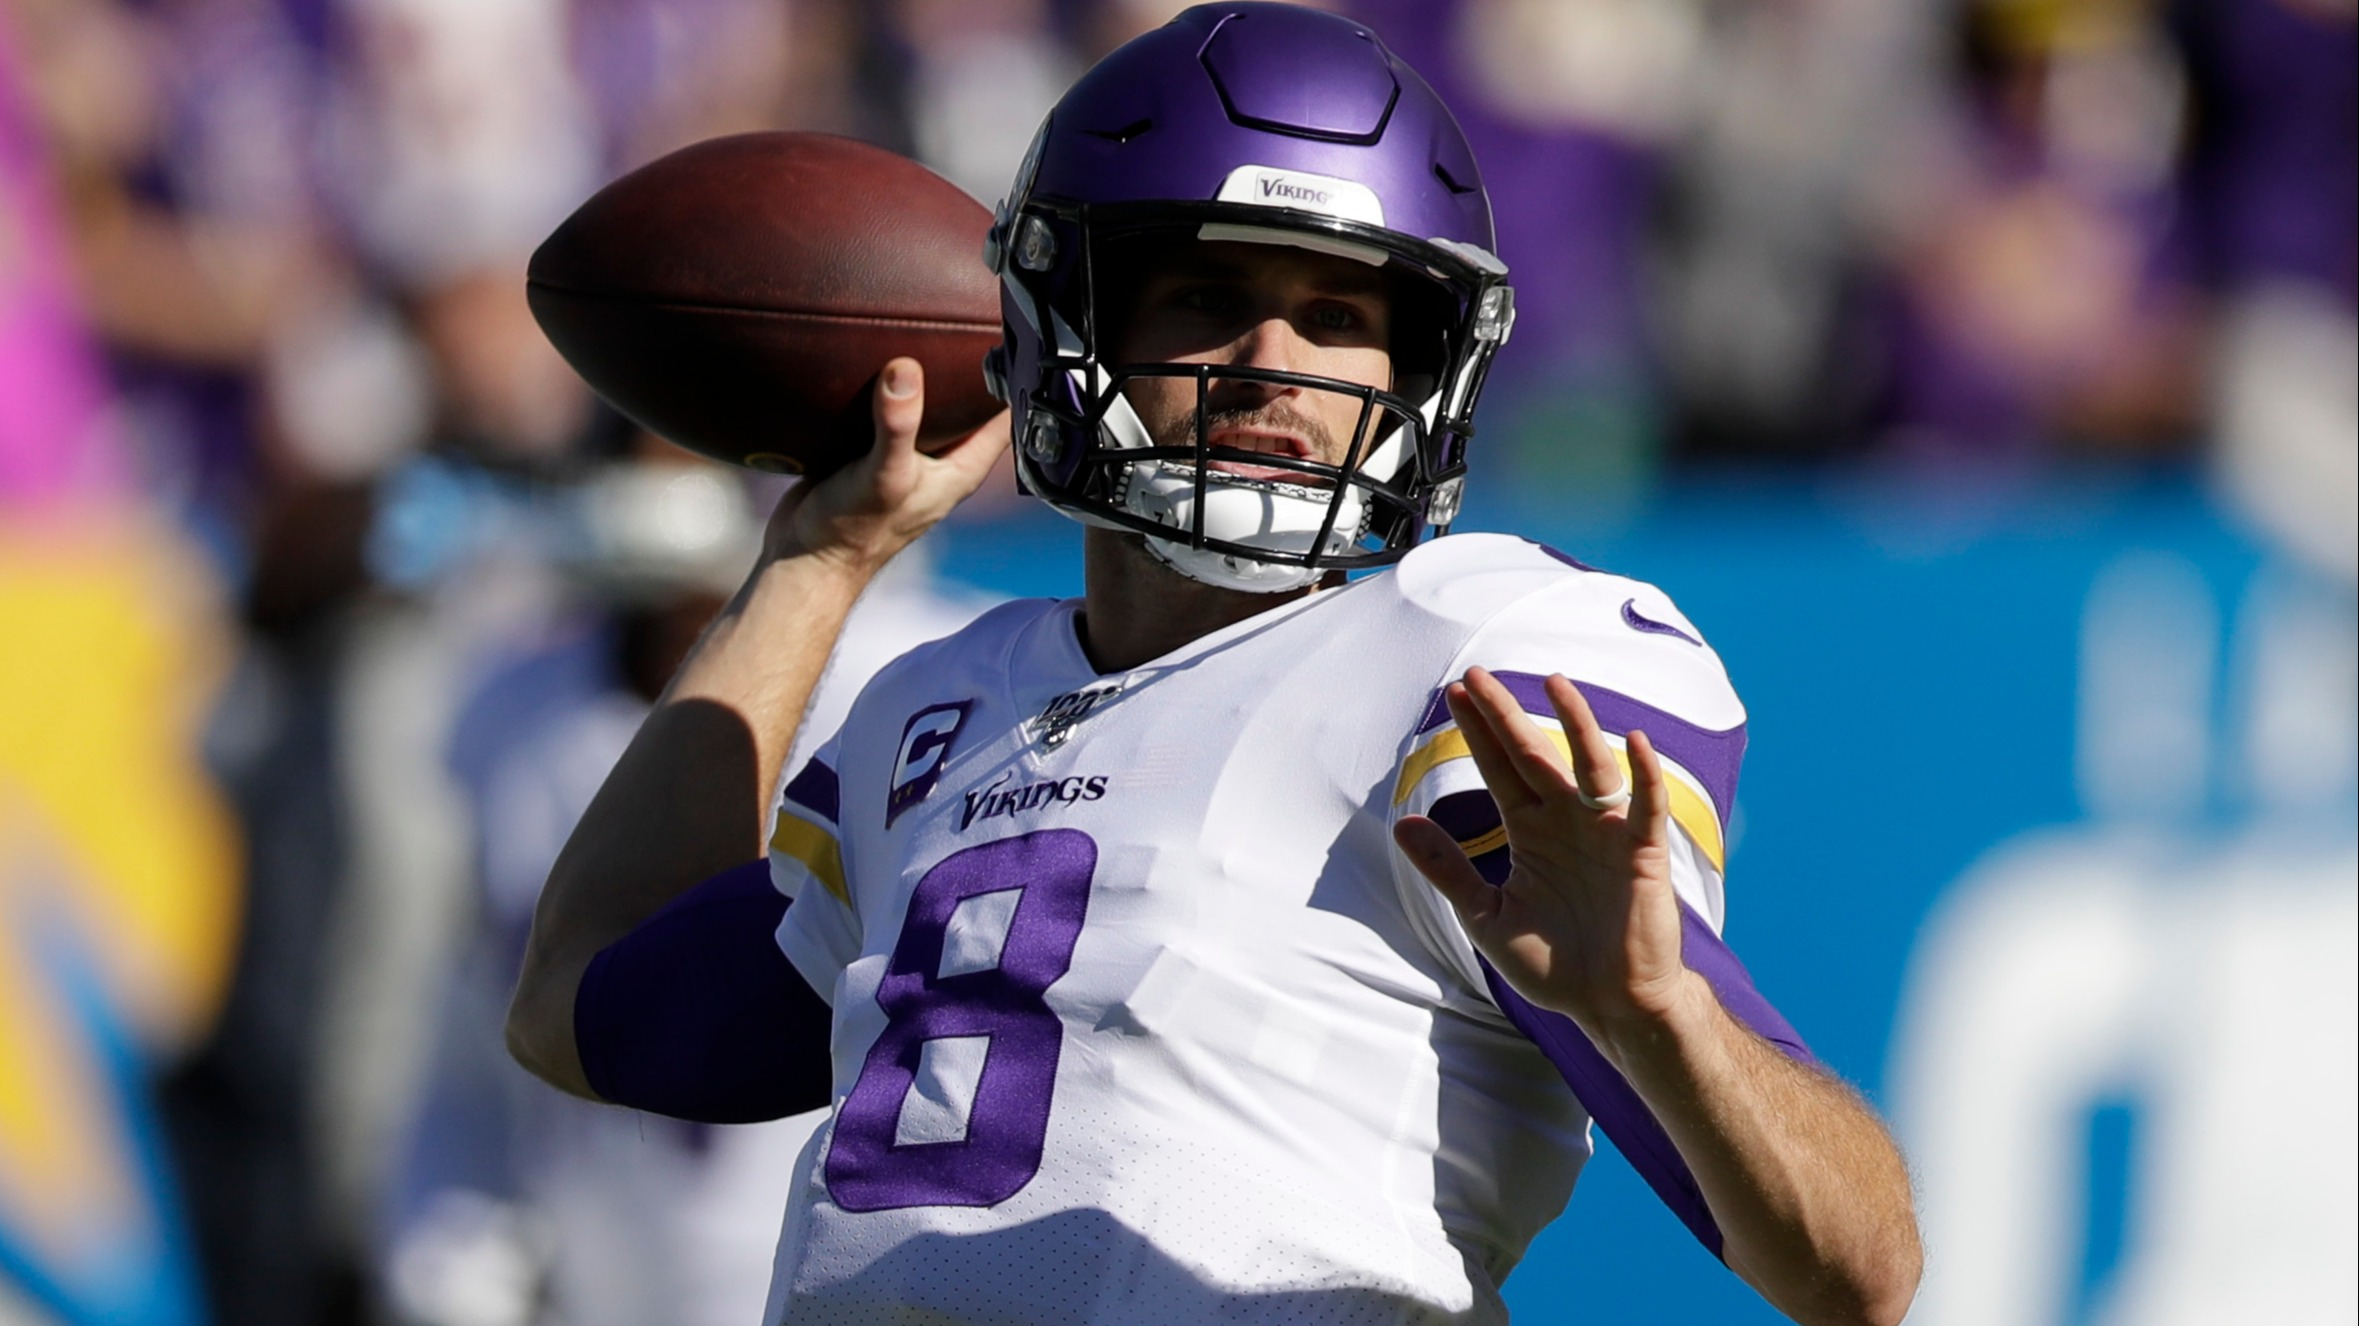 Packers vikings linemakers betting labour betting shops scotland